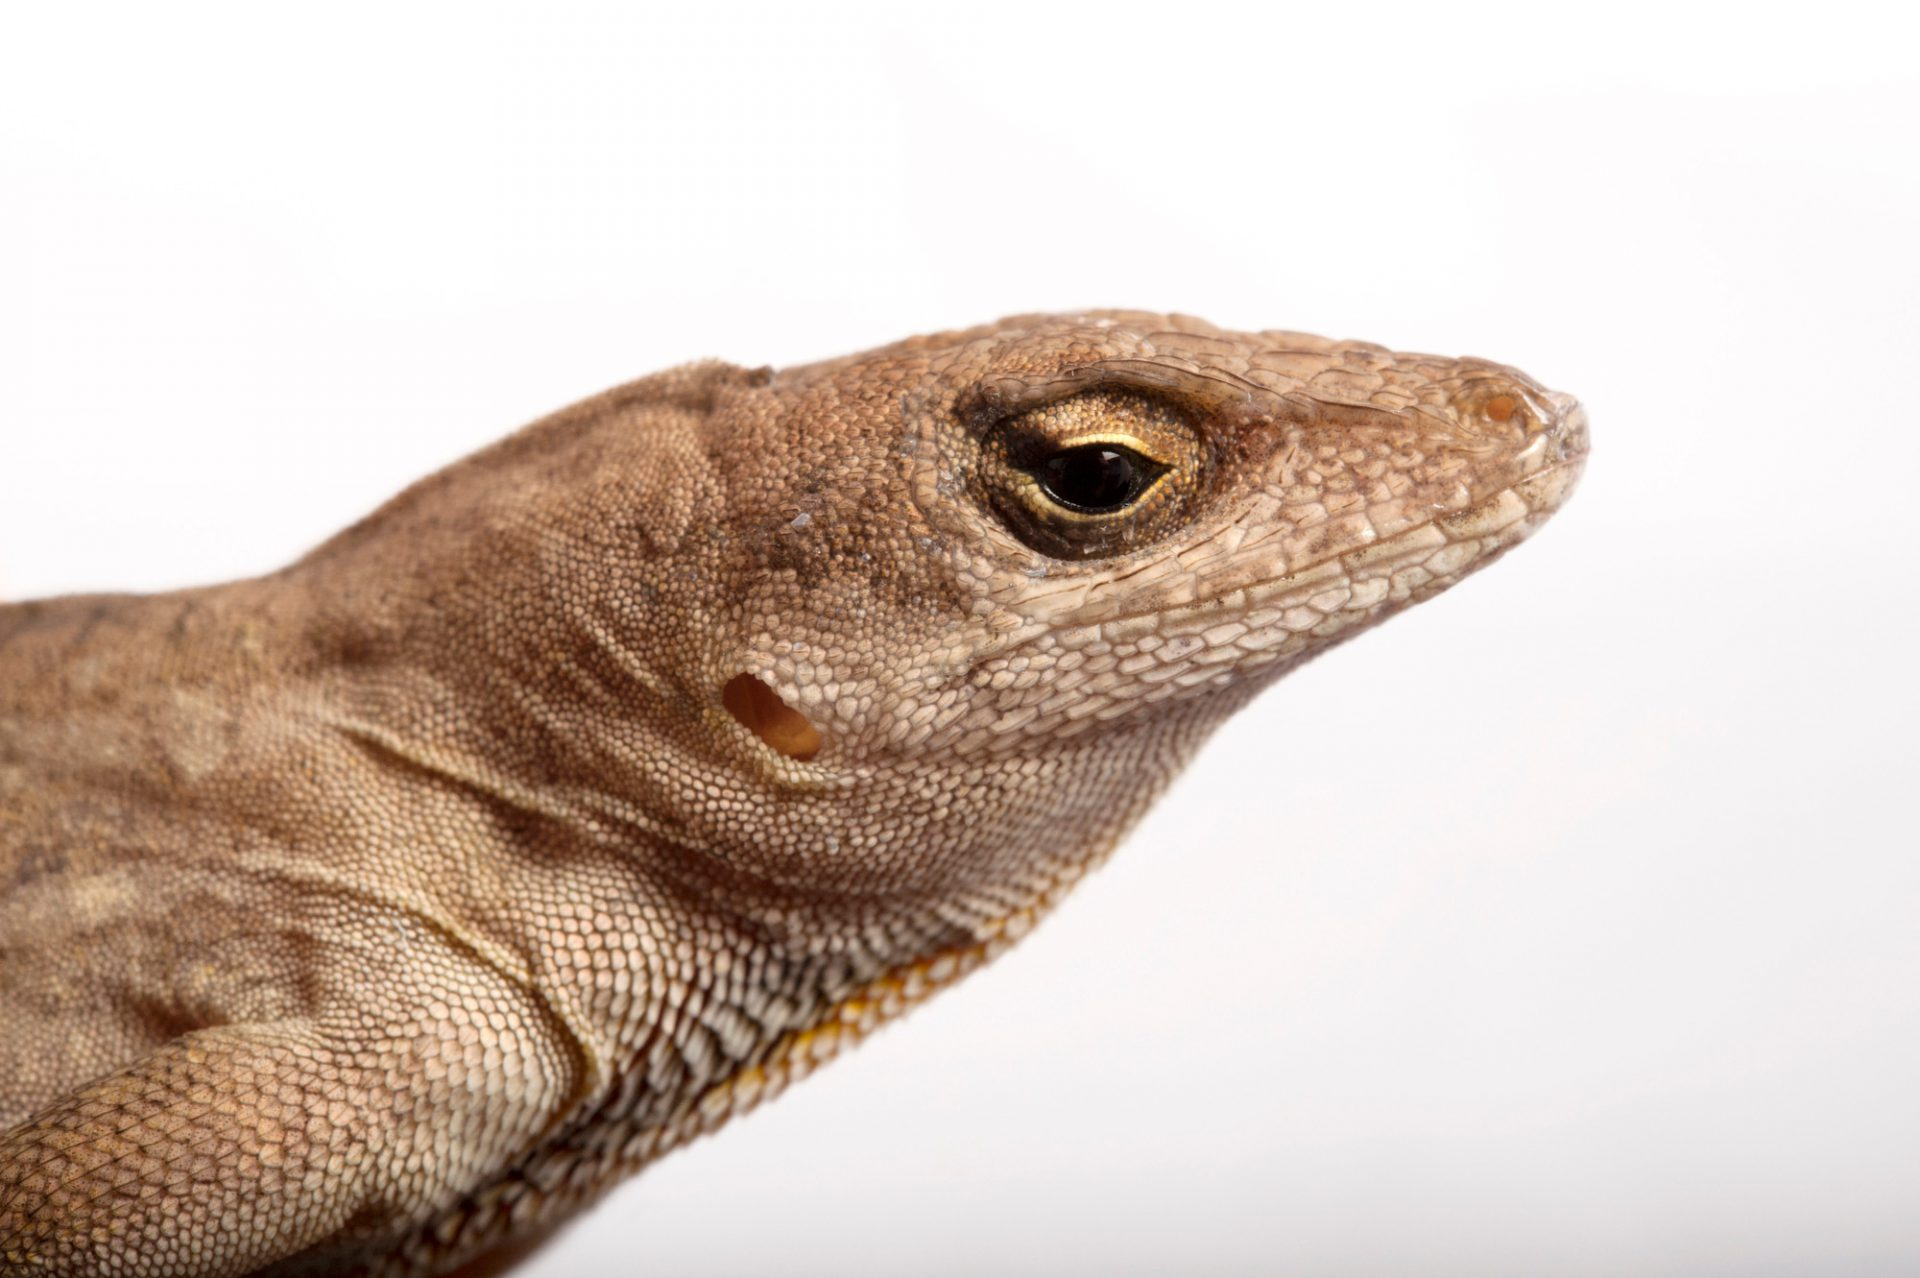 A brown anole (Anolis sagrei) at the Audubon Zoo in New Orleans, Louisiana.